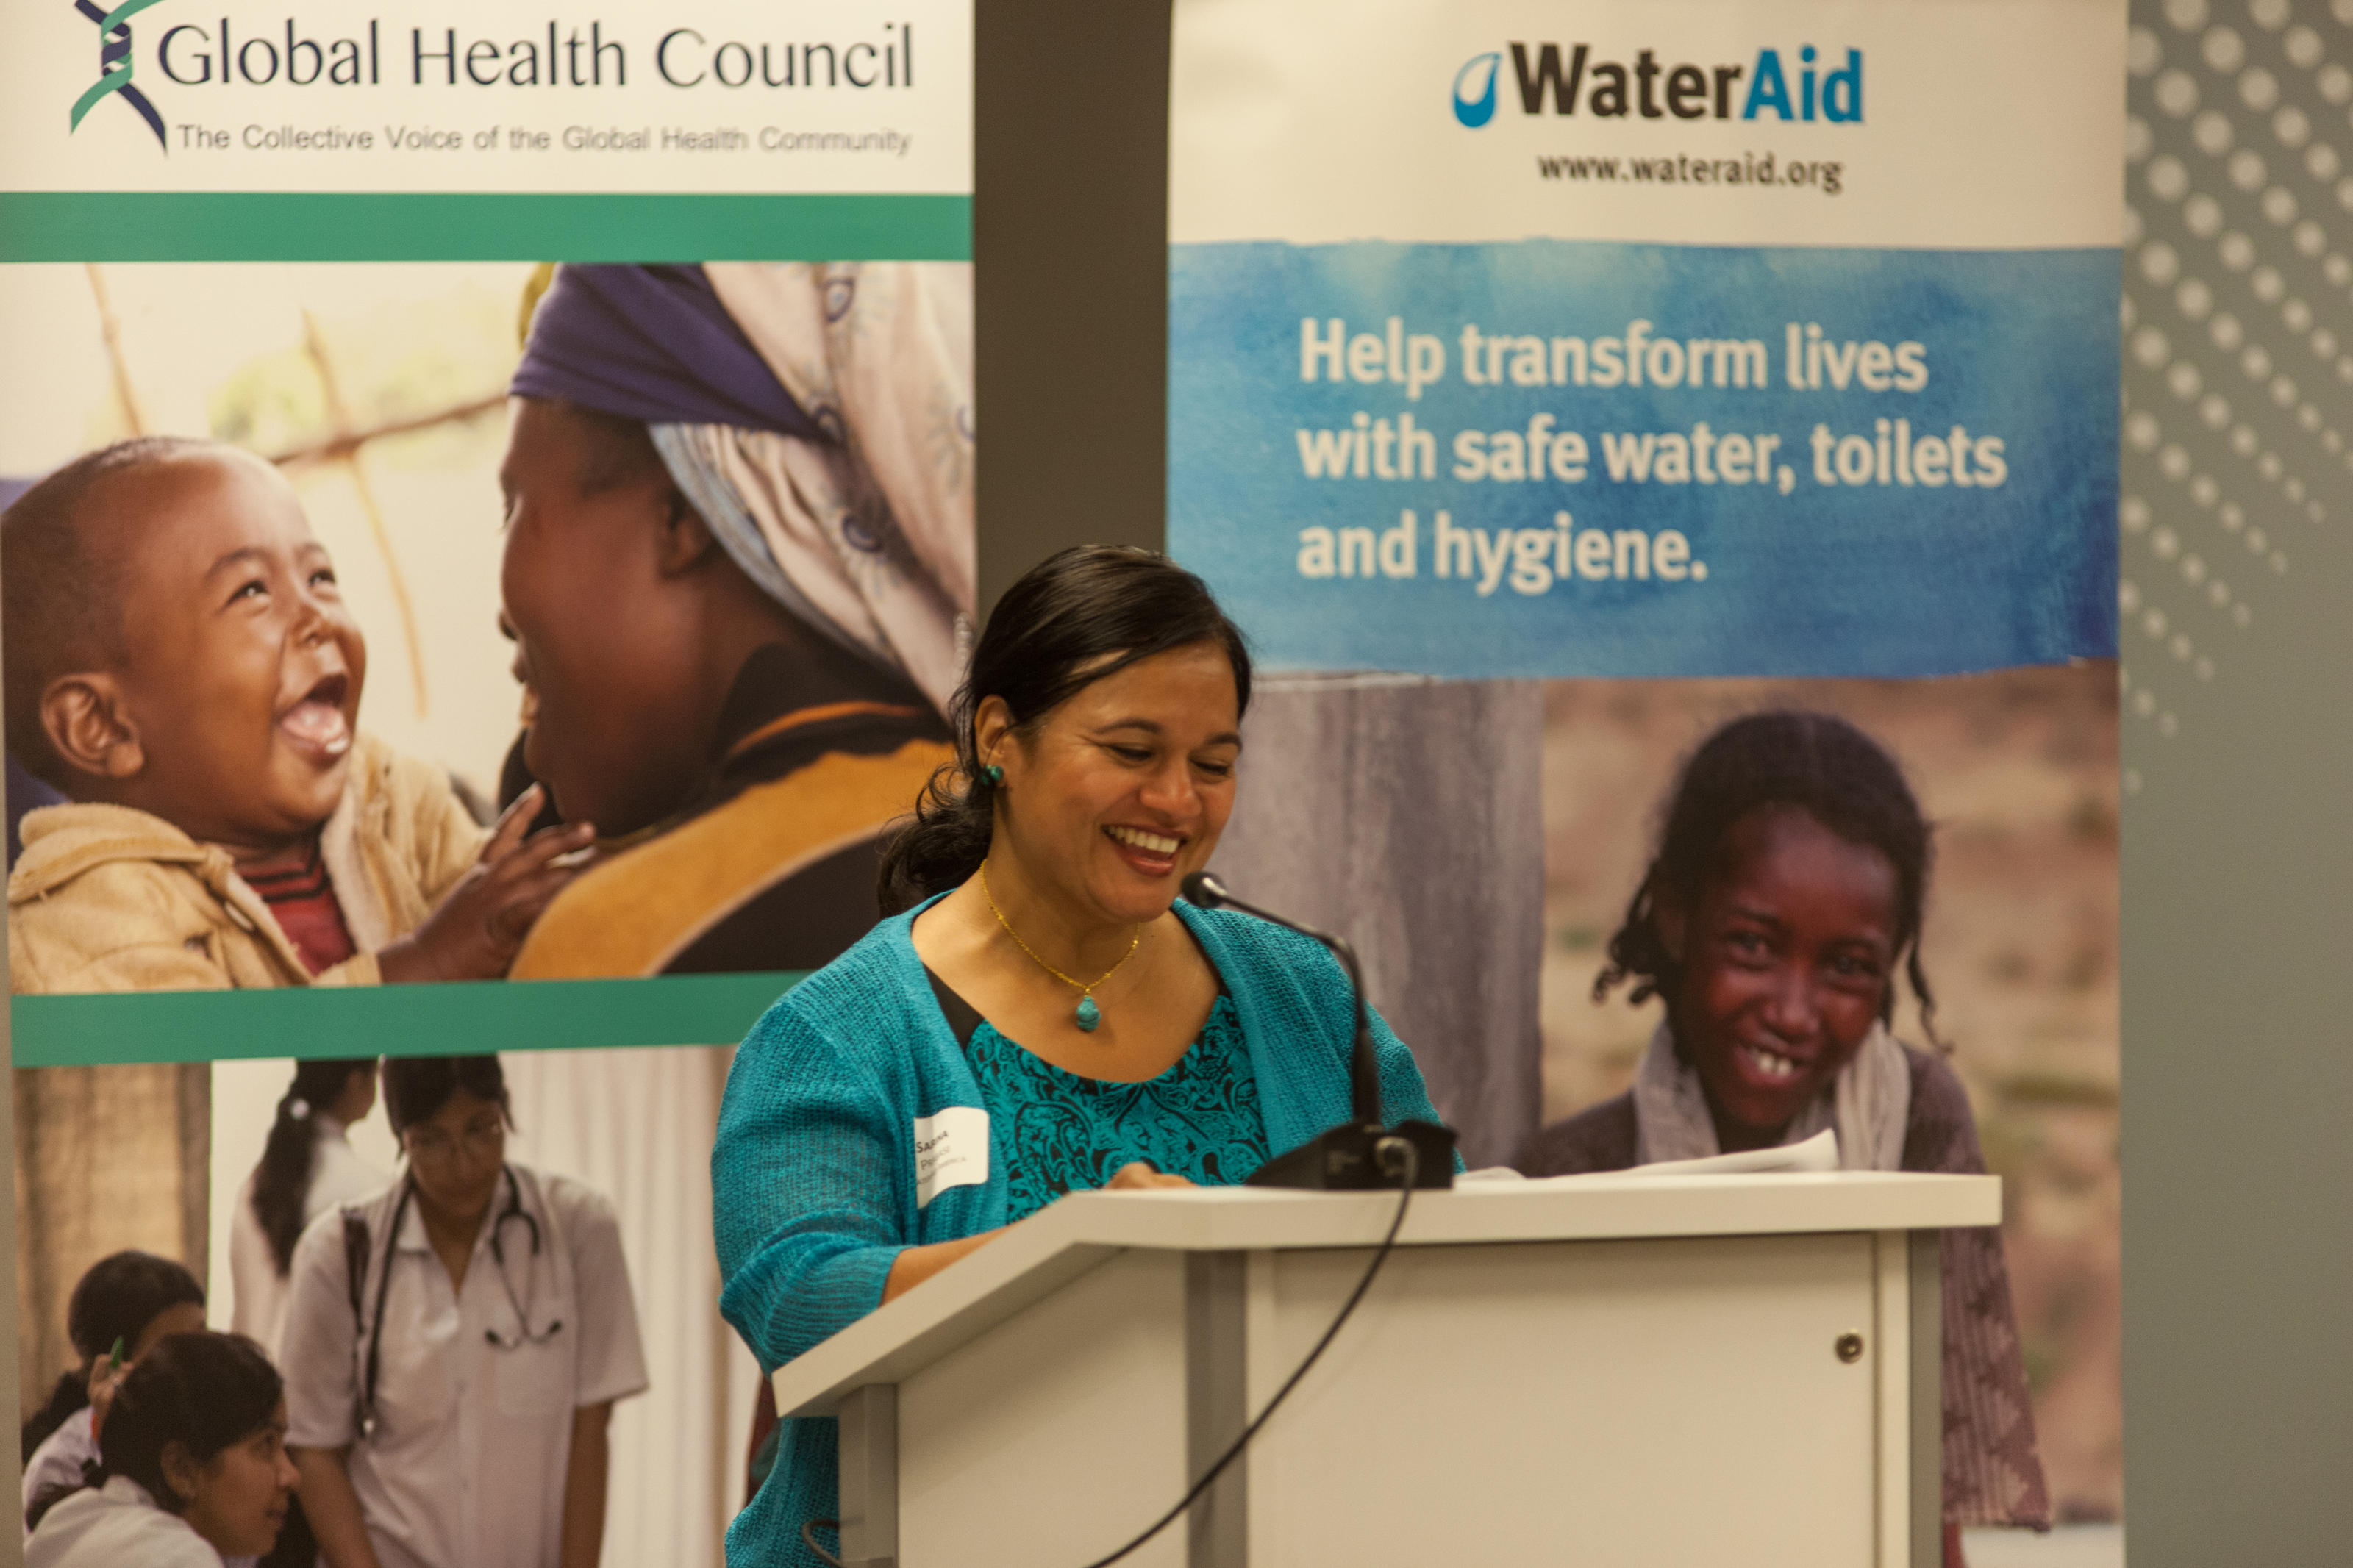 Ms Sarina Prabasi, WaterAid America's Chief Executive wraps up the event